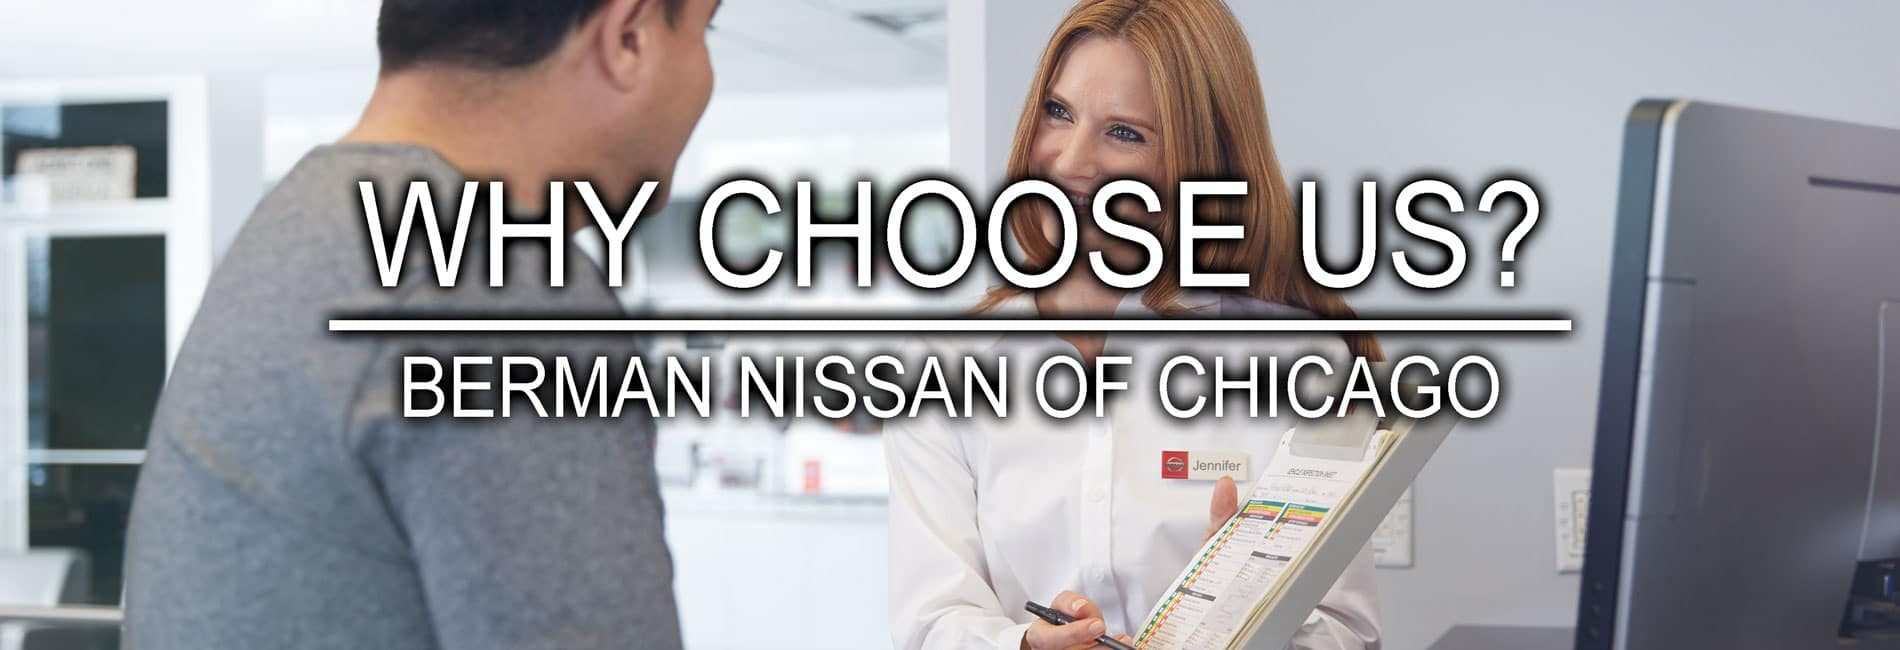 Berman Nissan of Chicago Vs Al Piemonte Nissan